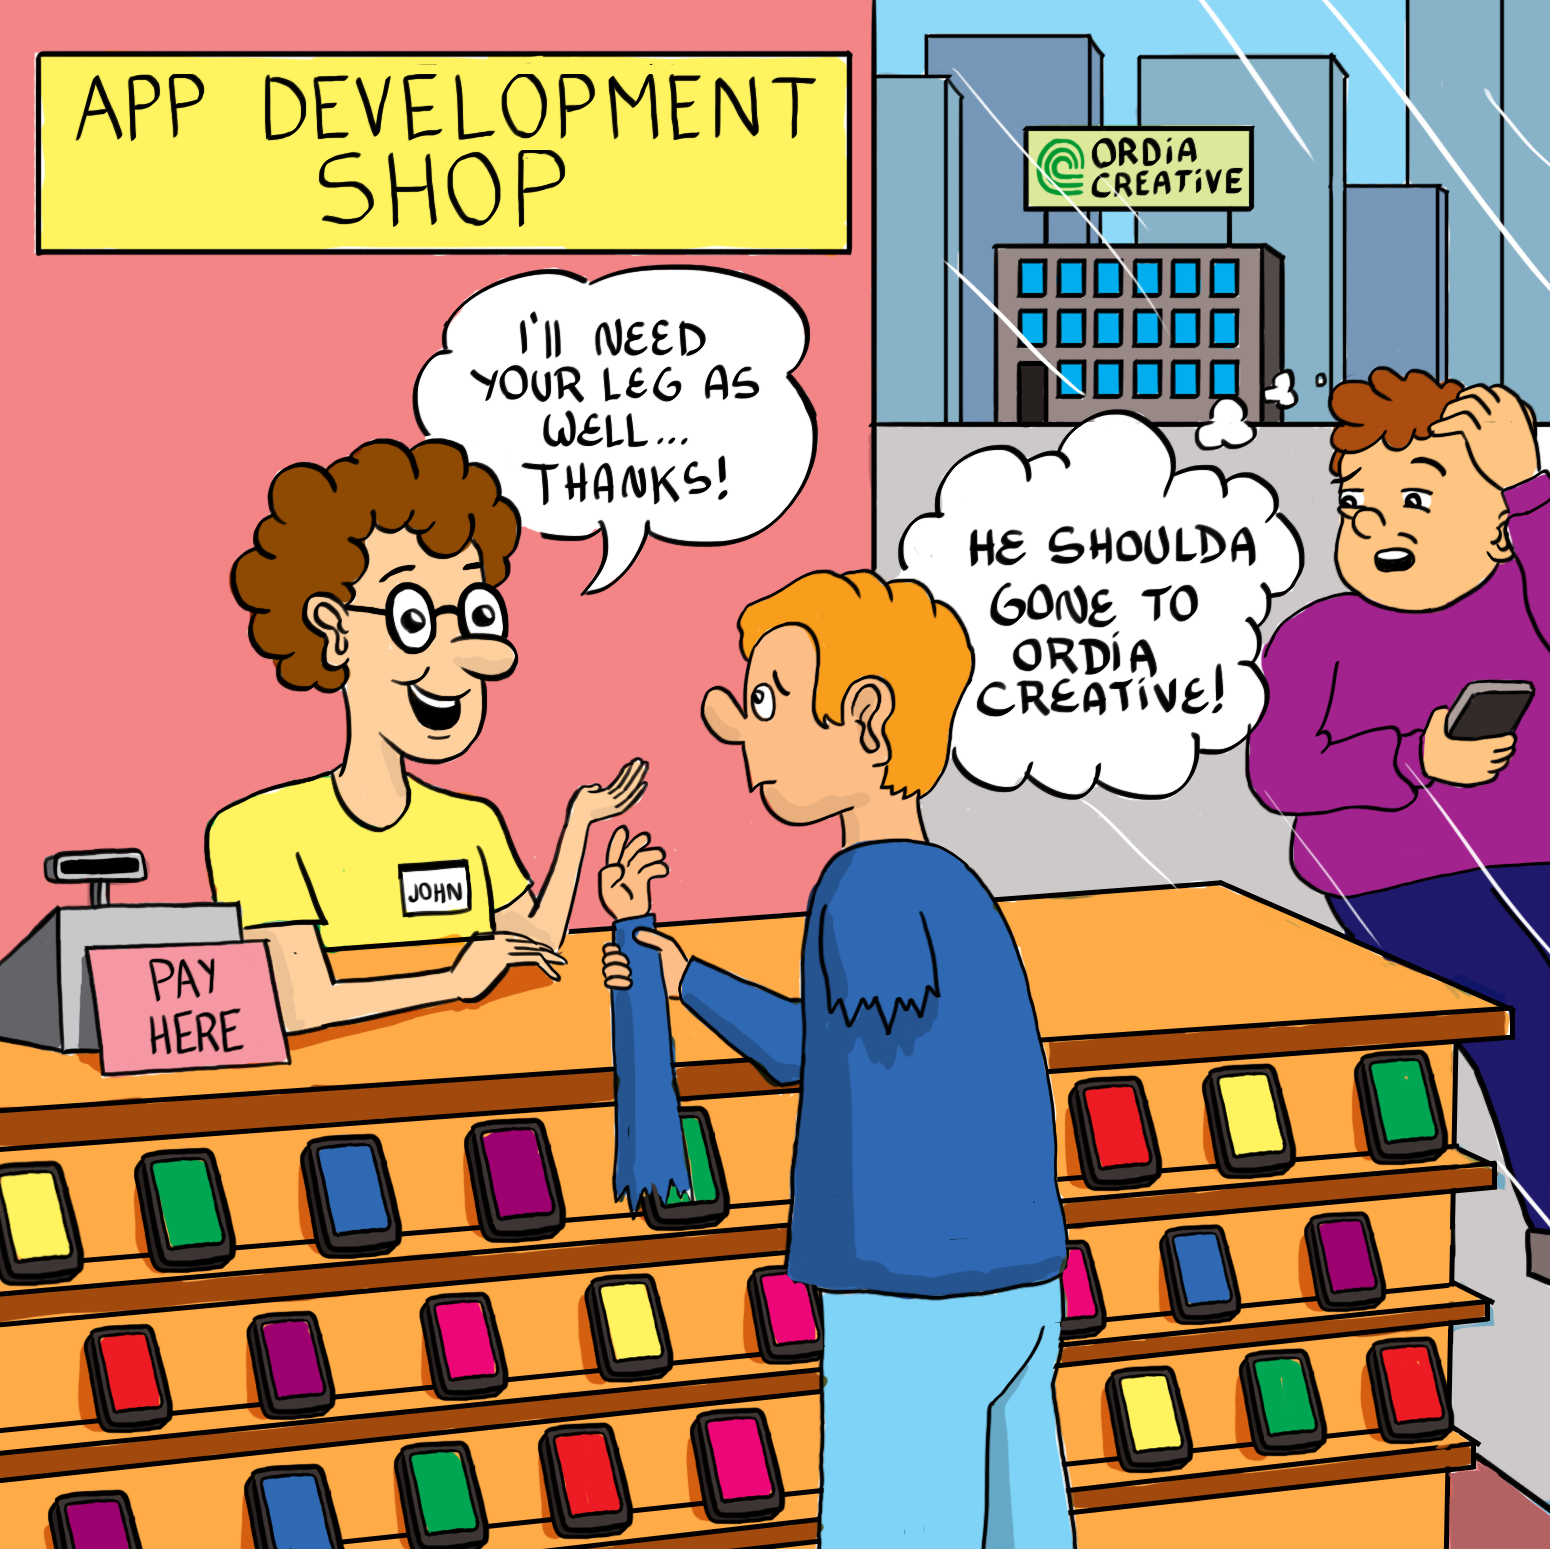 Mobile app development doesn't have to cost an arm and a